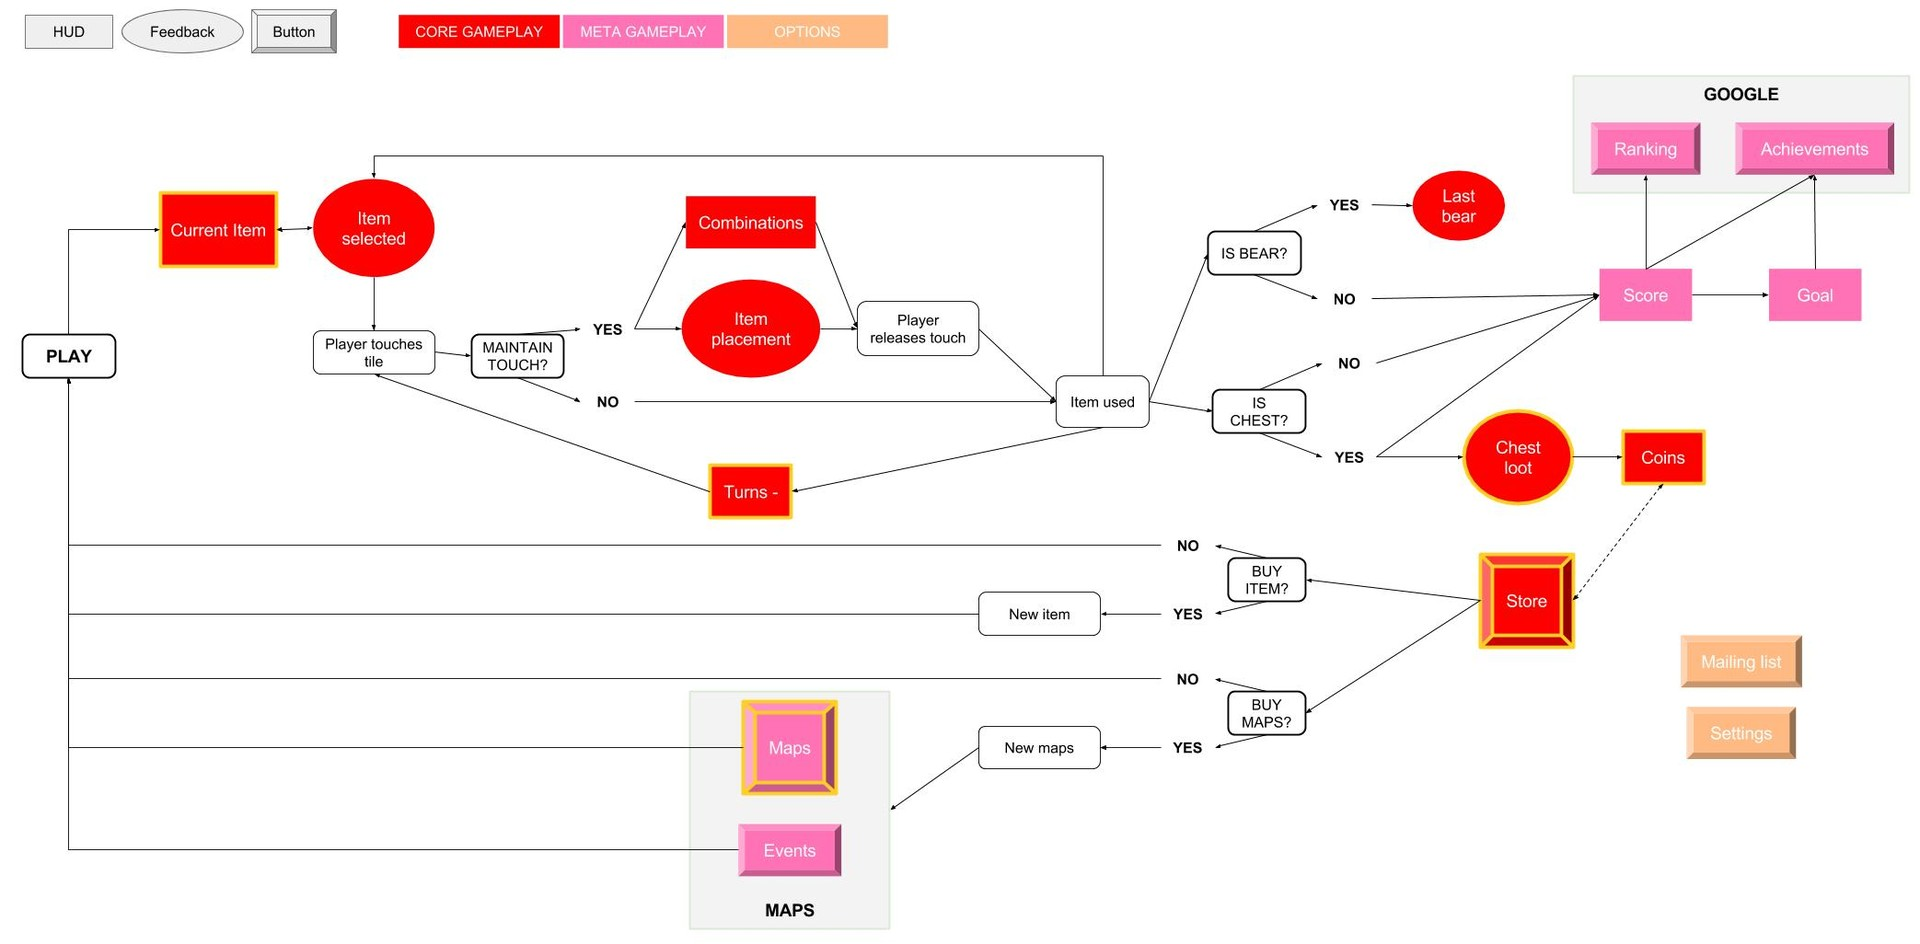 Simple flowchart of the interactions around the core gameplay of the game, based on the list above.